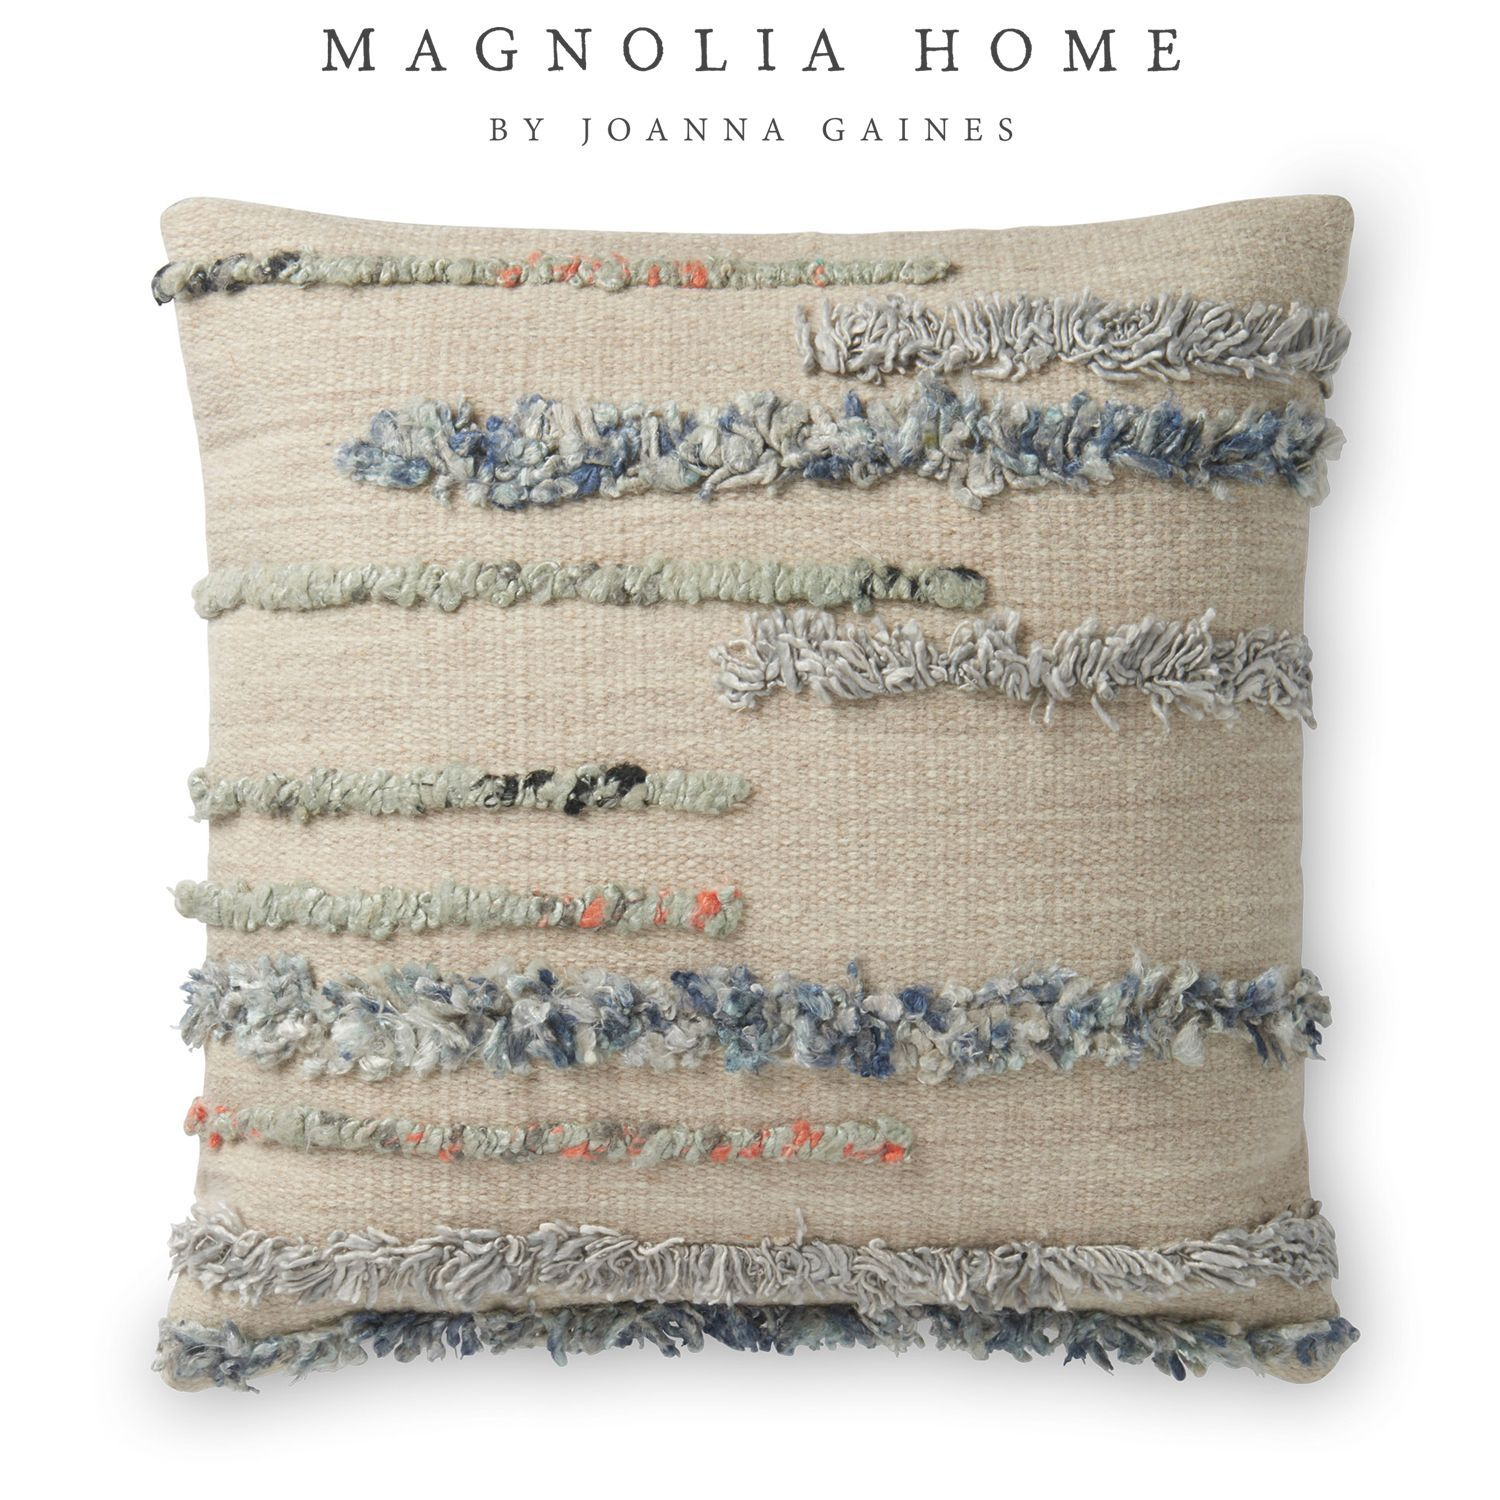 Magnolia Home Harper Pillow   Pier 1 Imports   Magnolia Pertaining To Magnolia Sectional Sofas With Pillows (View 7 of 15)